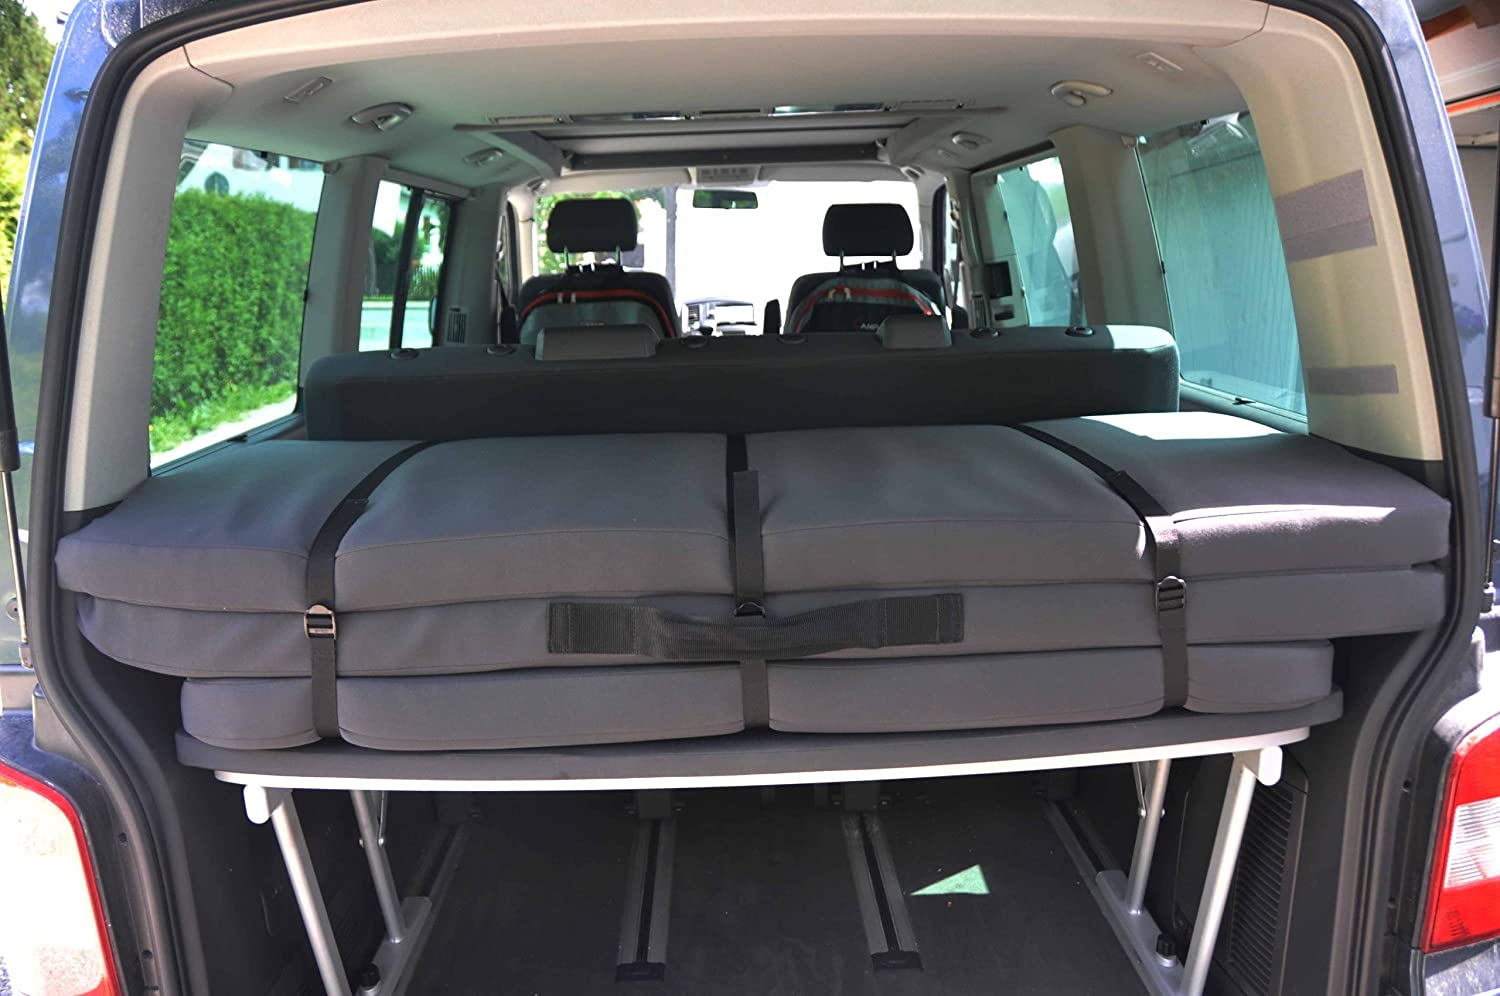 Campinie - Cama Plegable para VW T5 Multivan y California Beach: Amazon.es: Coche y moto